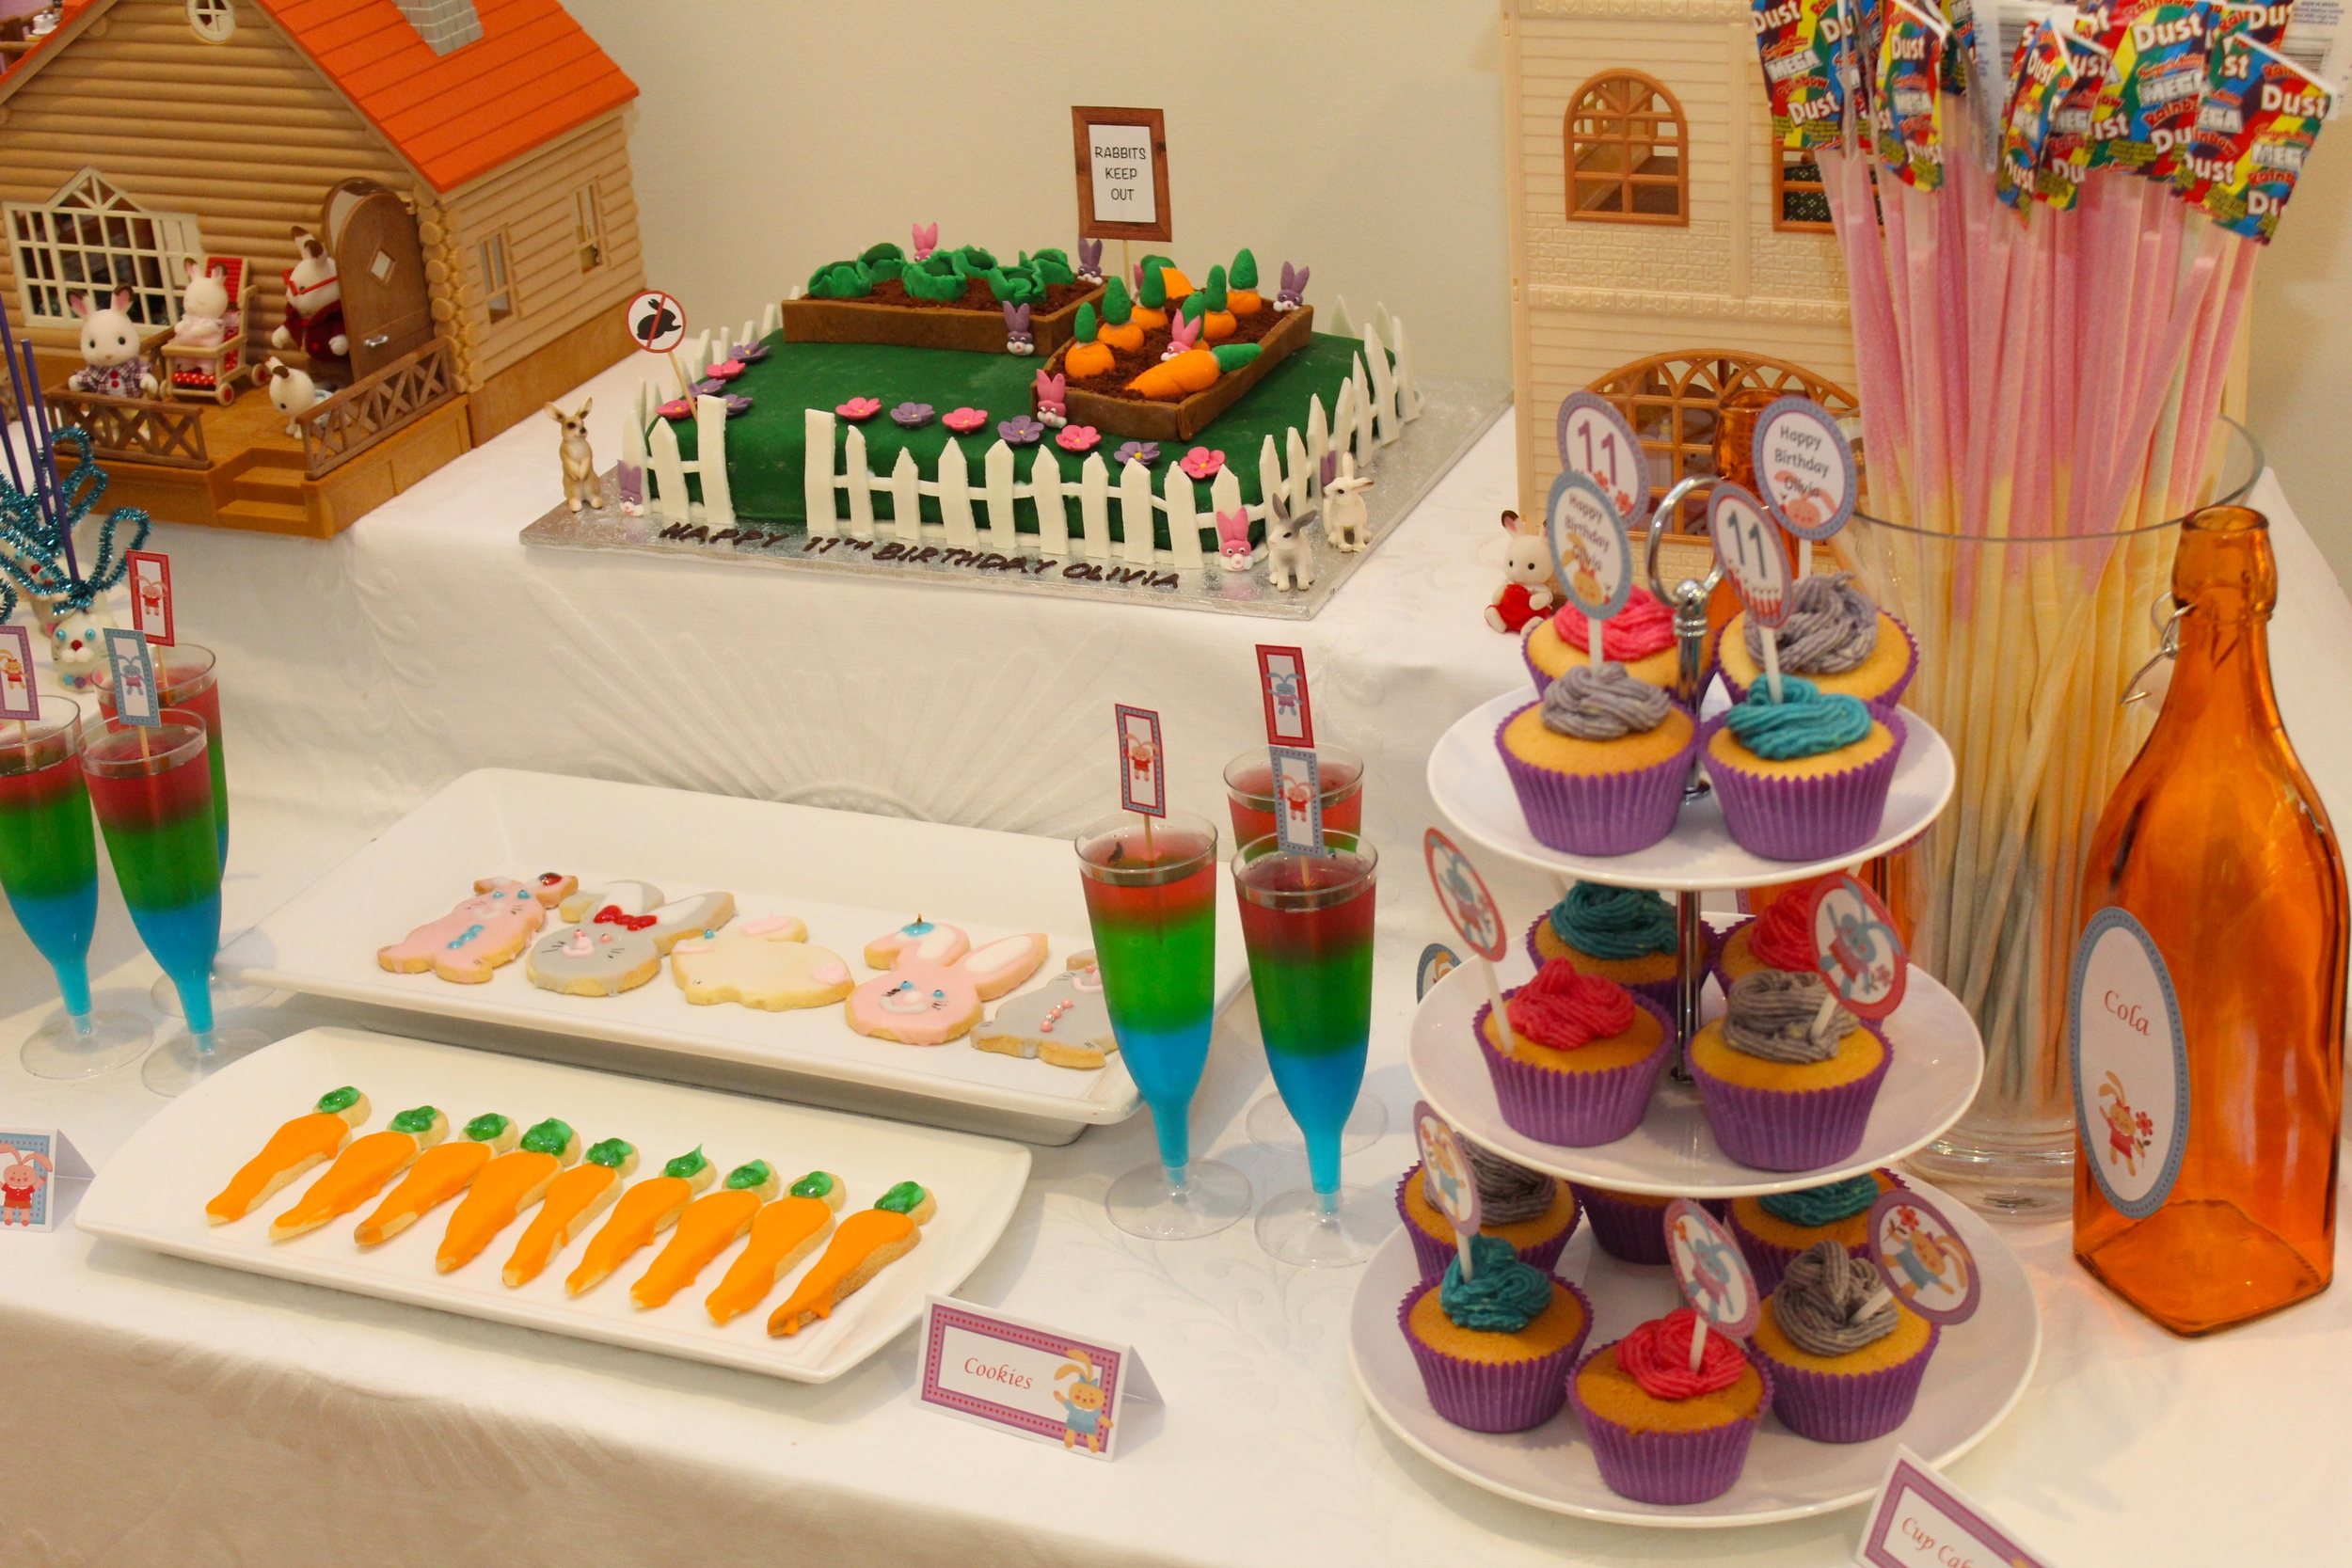 Bunny Party Dessert Table